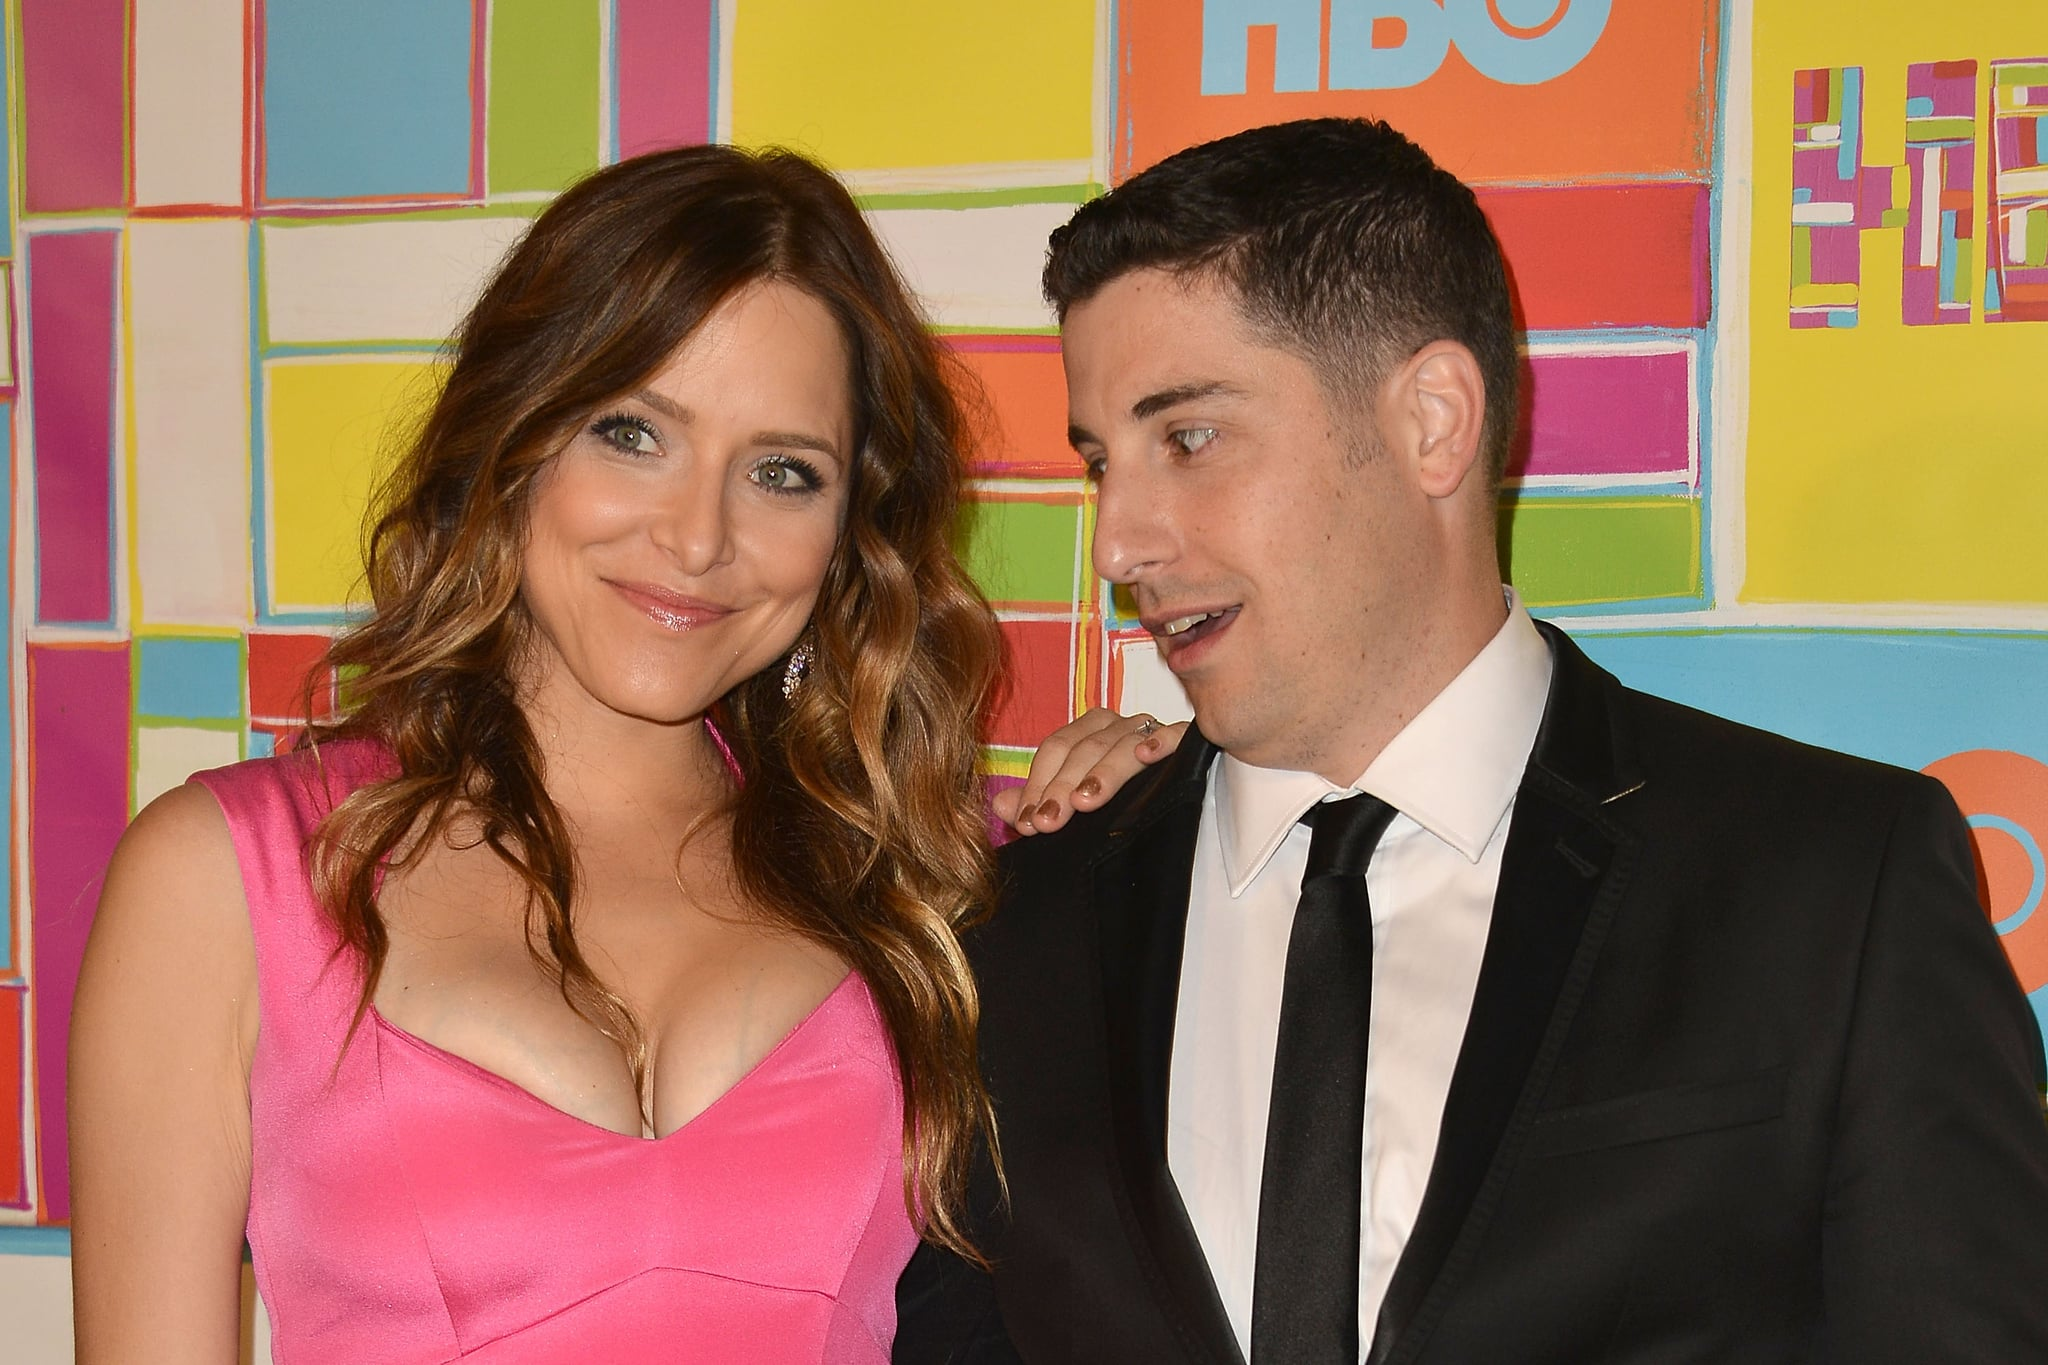 Jason Biggs couldn't keep his eyes off wife Jenny Mollen's cleavage at the HBO party.